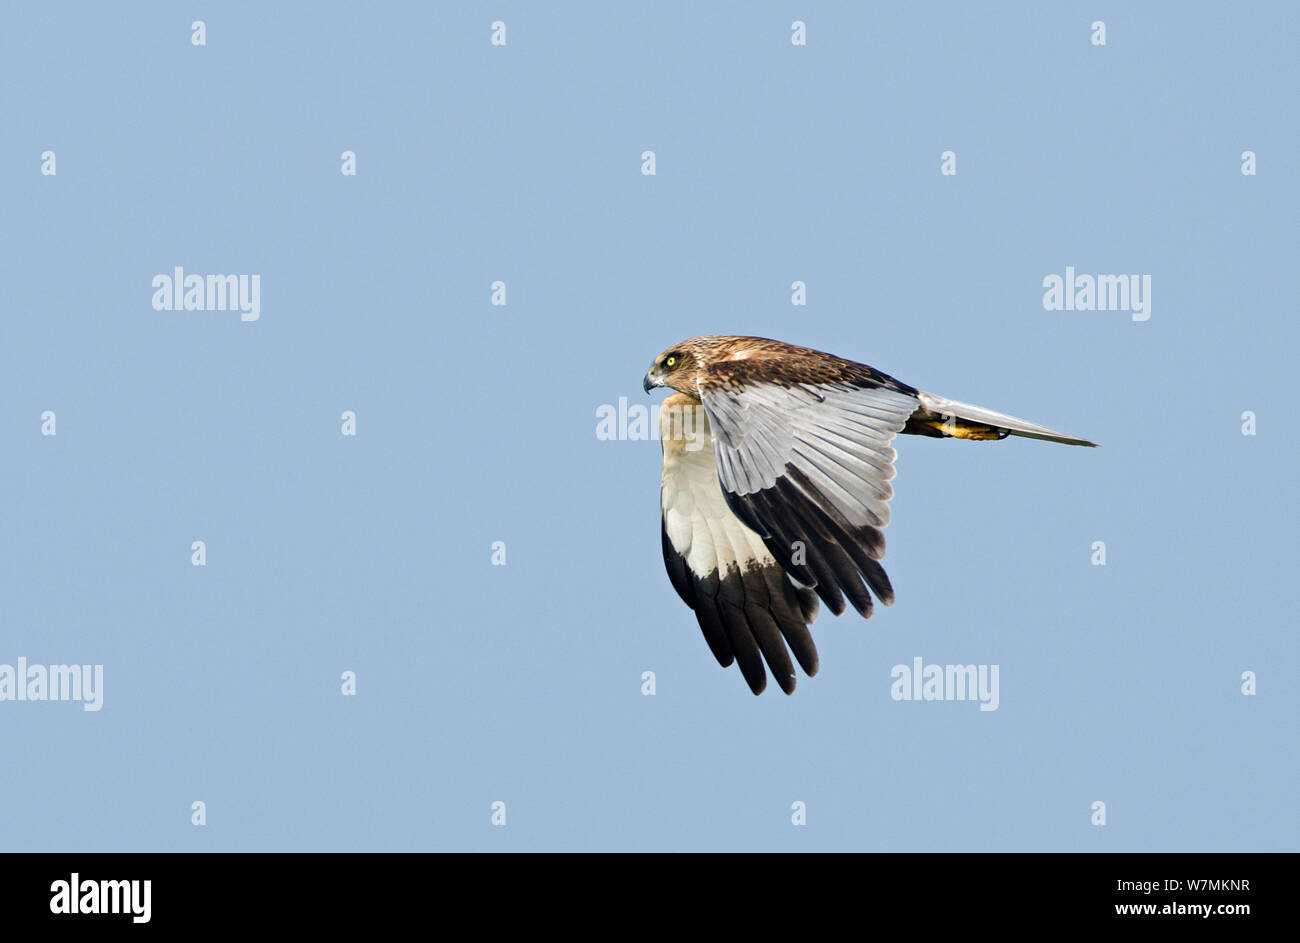 Marsh Harrier (Circus aeruginosus) male in flight showing wing plumage. Woodwalton Fen, Cambridgeshire Fens, England, March. Stock Photo